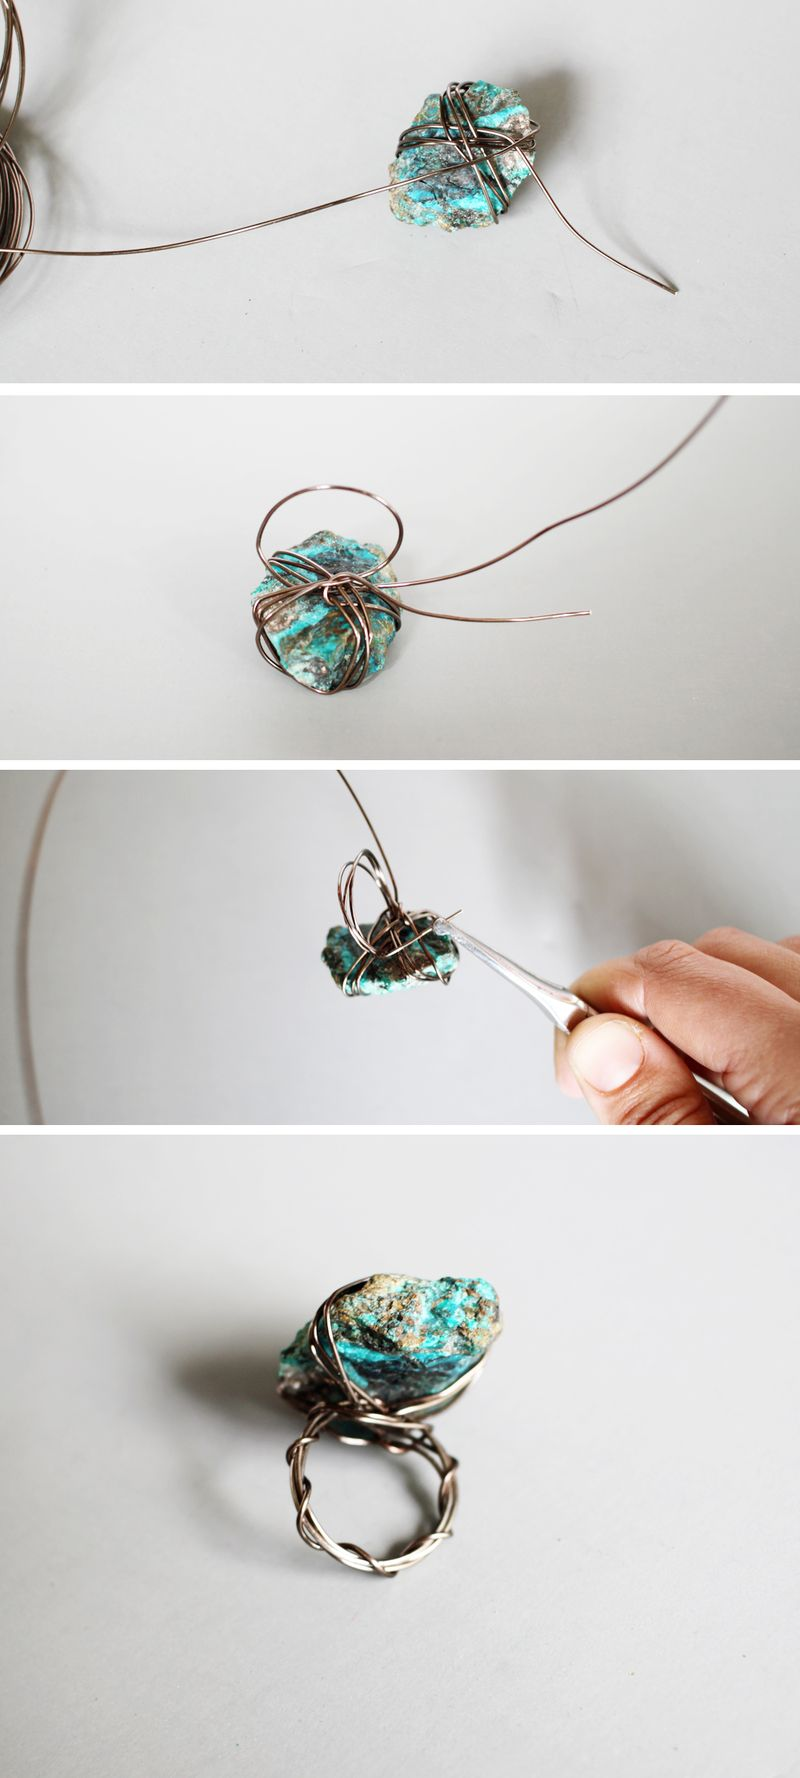 How to make a wire ring